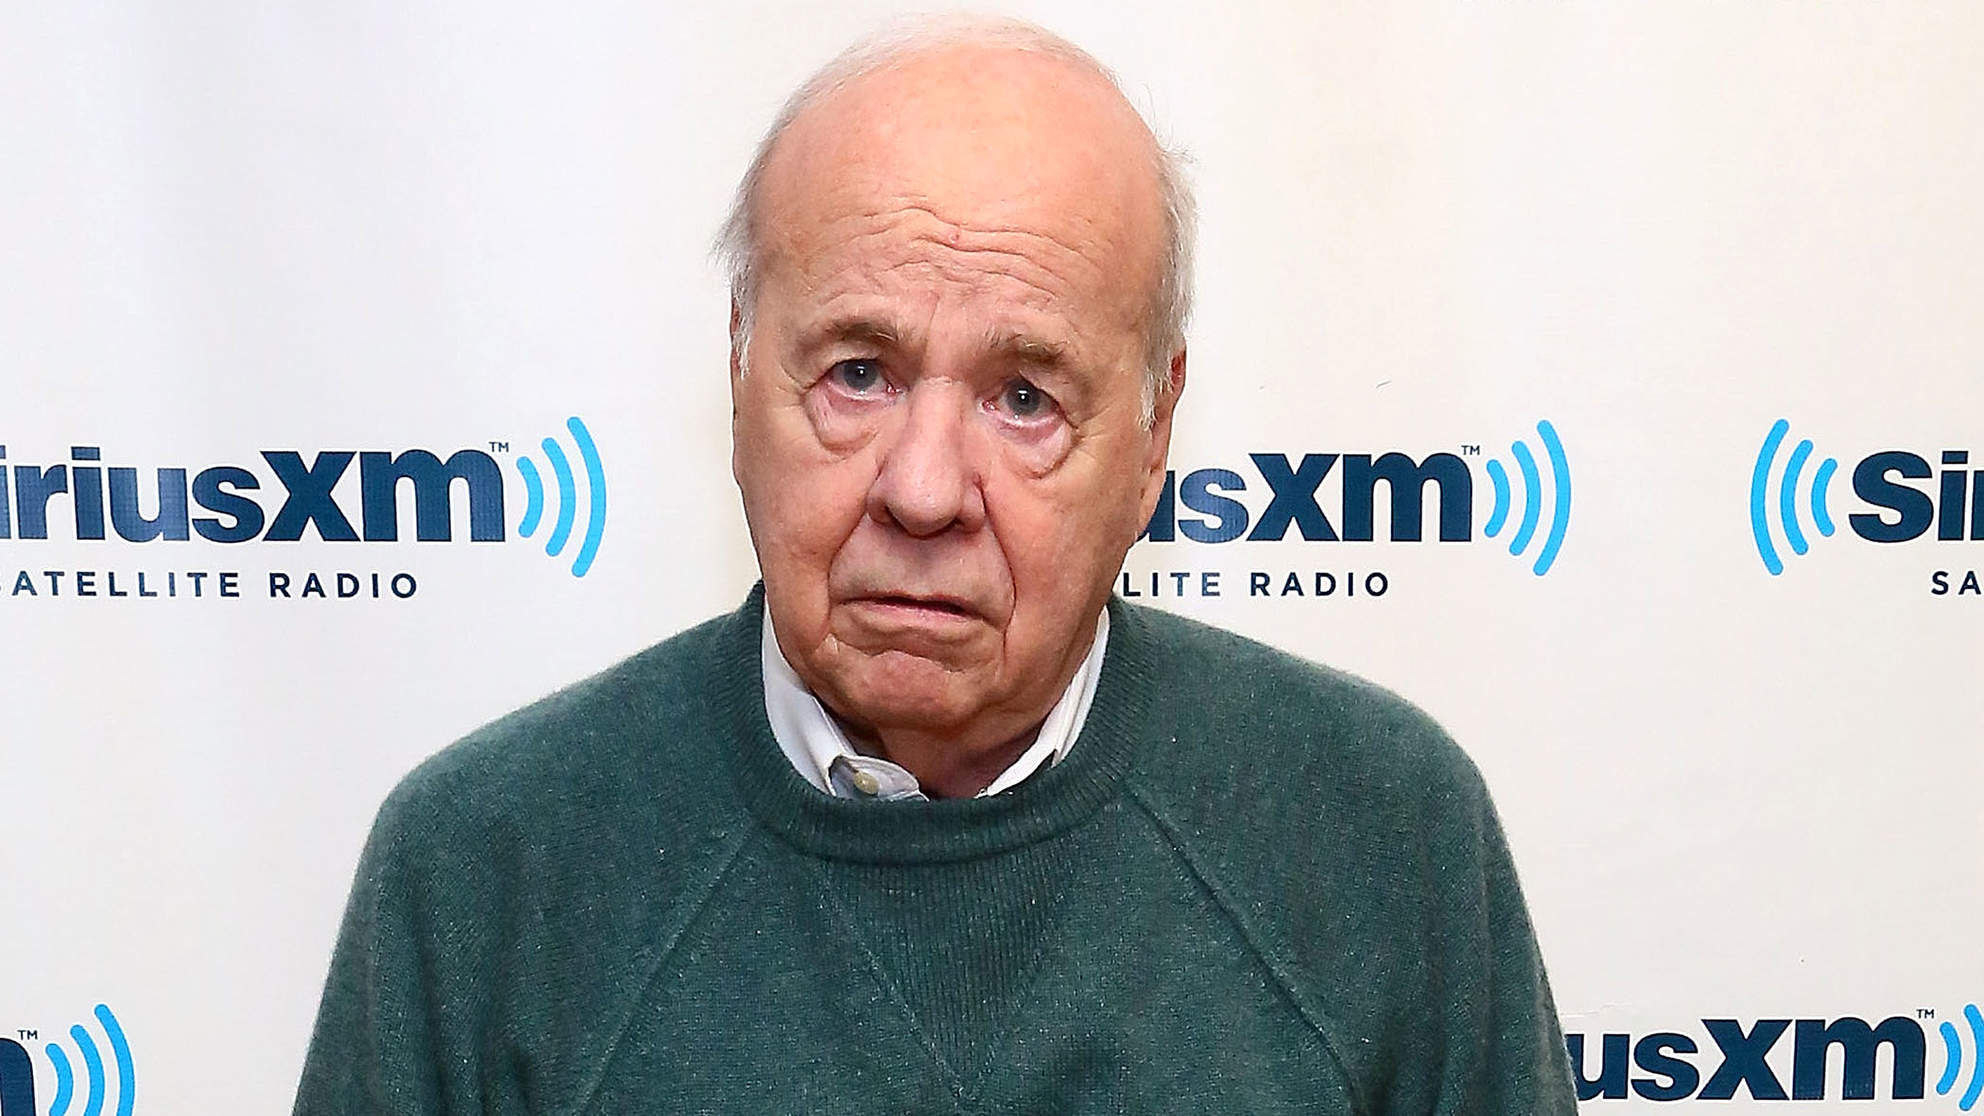 Tim Conway, 84, Suffering from Dementia: He's 'Almost Entirely Unresponsive,' Says Daughter